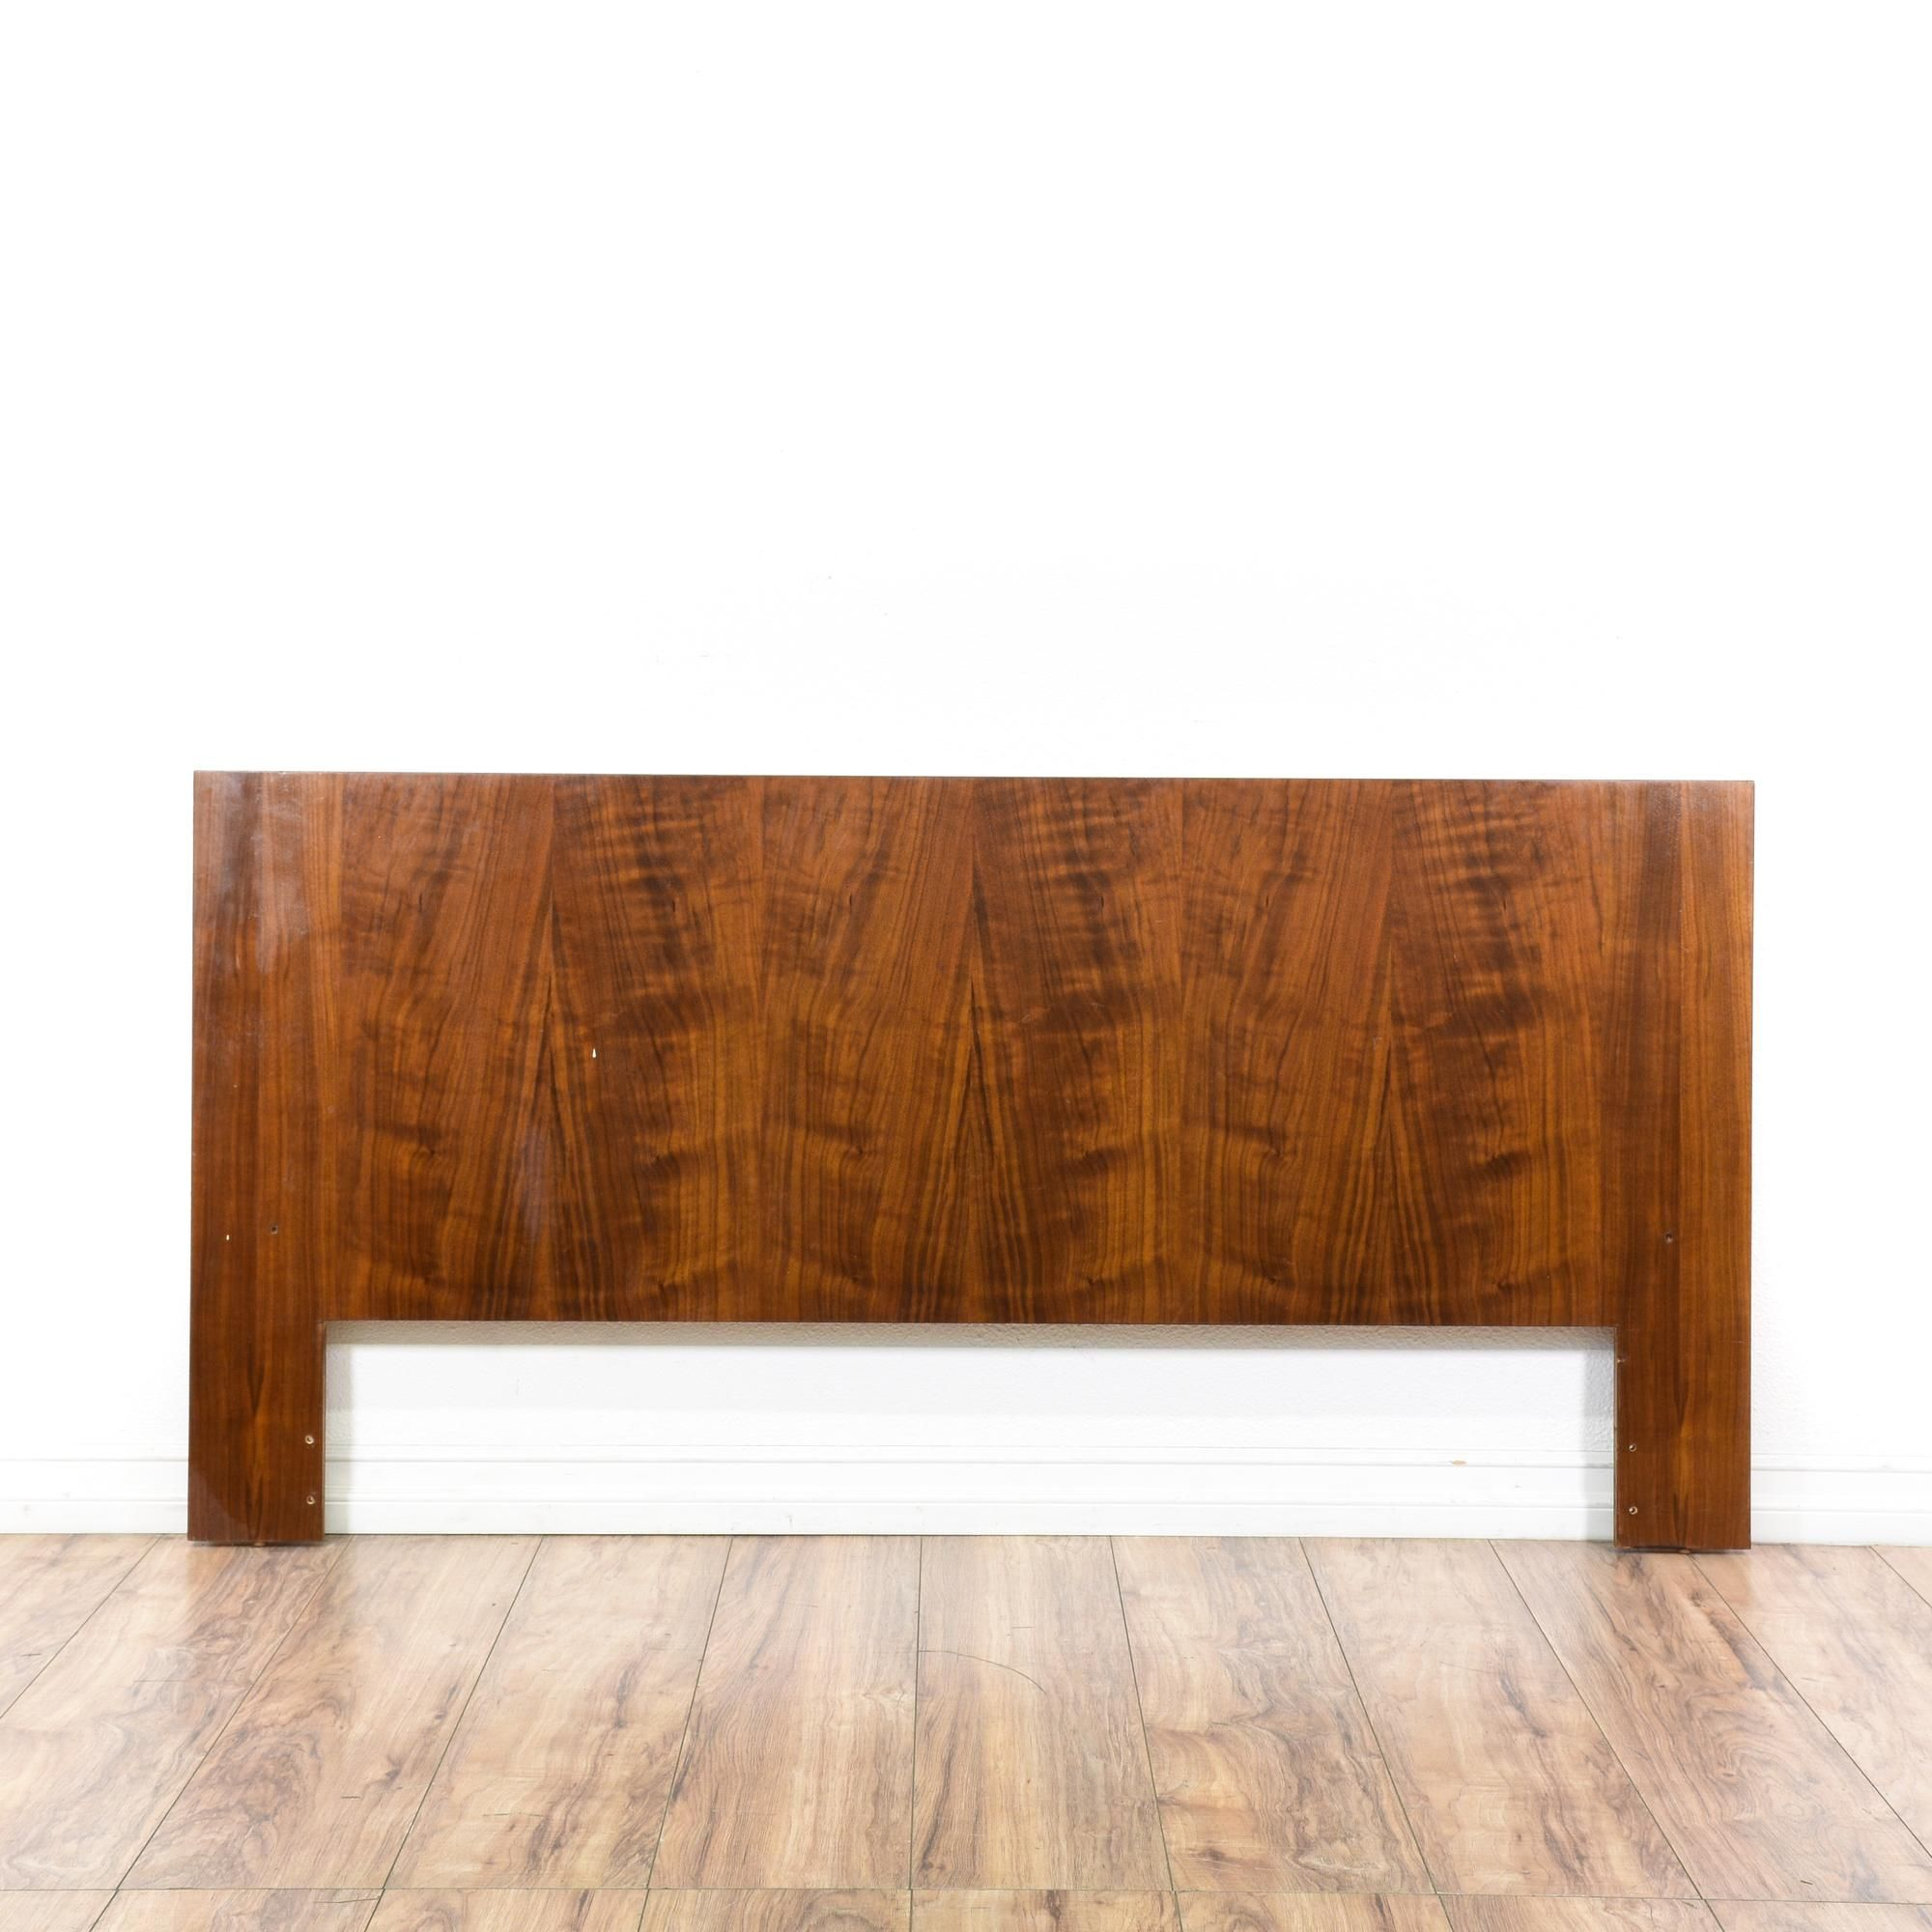 This Danish Modern Headboard Is Featured In A Solid Wood With Gorgeous Glossy Cherry Finish Queen Sized Has Low Profile Top And Simple